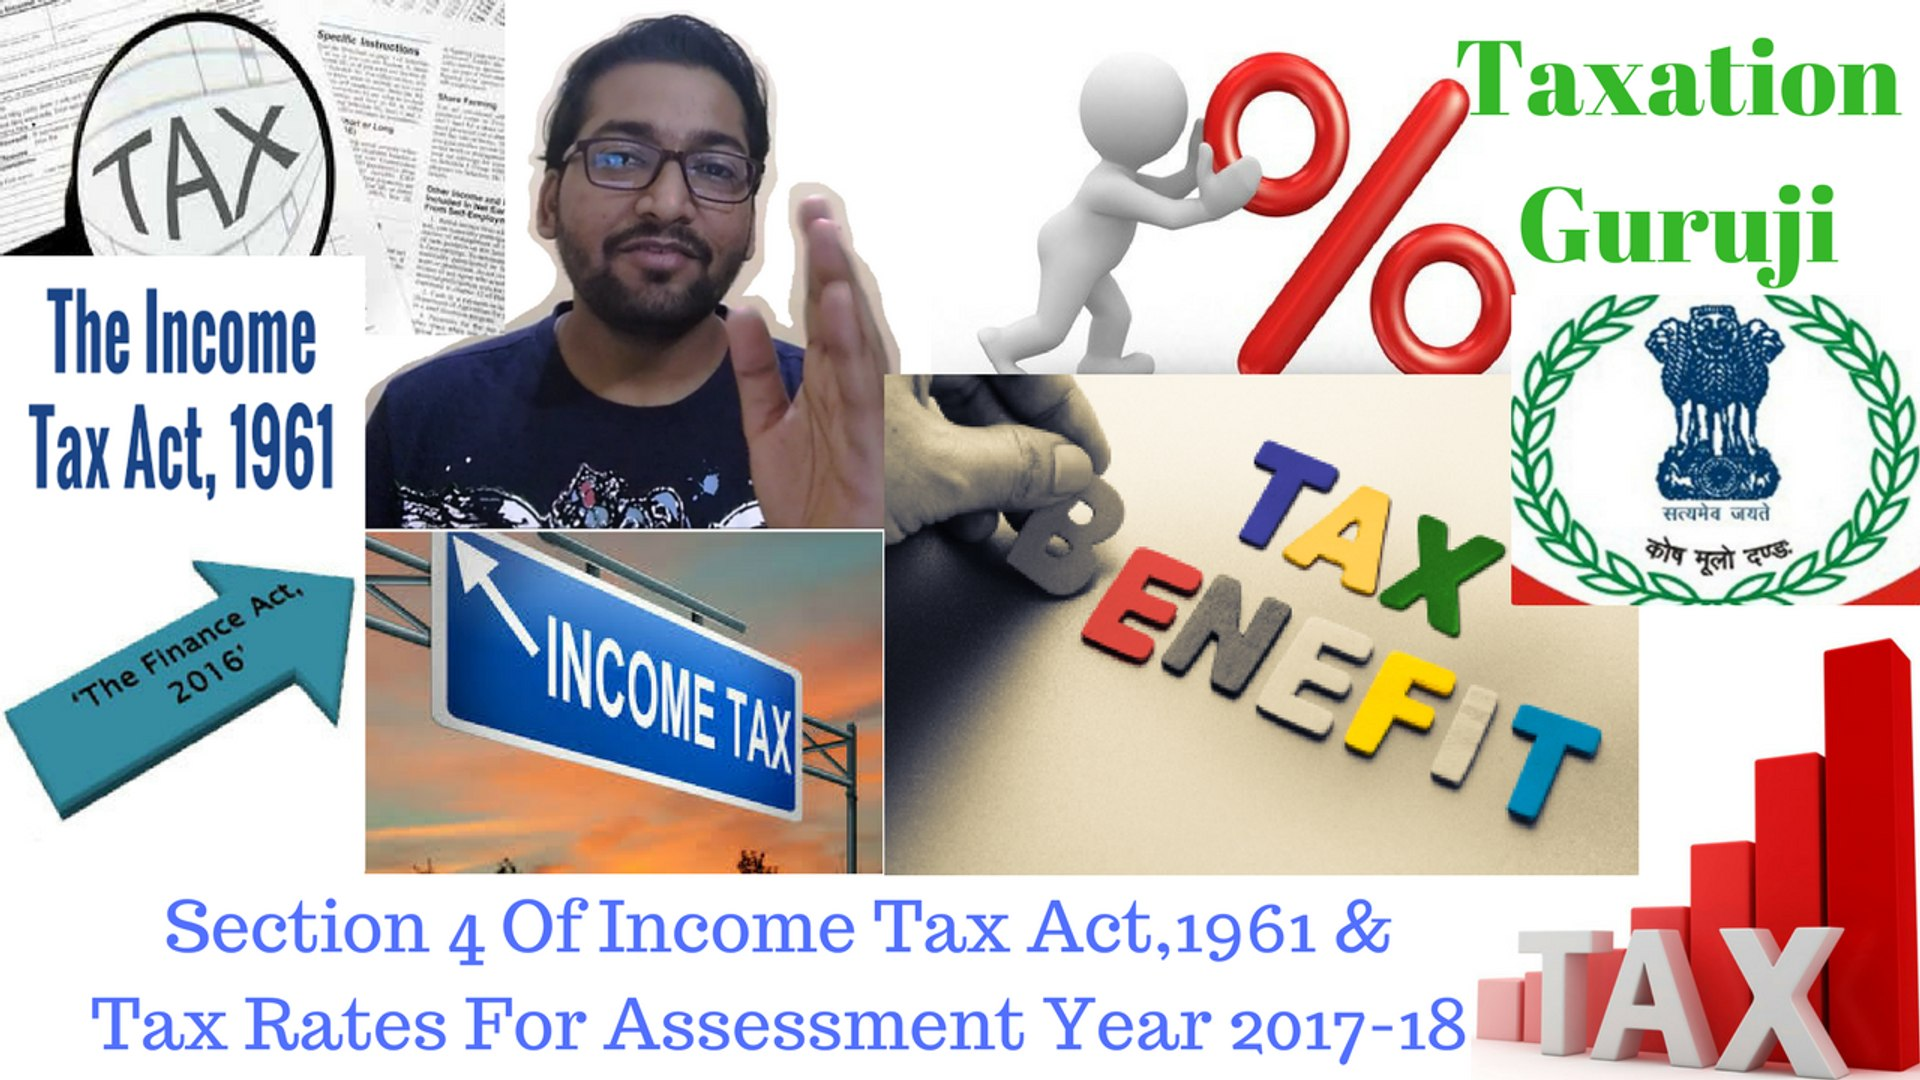 Section 4 Of Income Tax Act,1961  Tax Rates for Assessment Year 2017-18